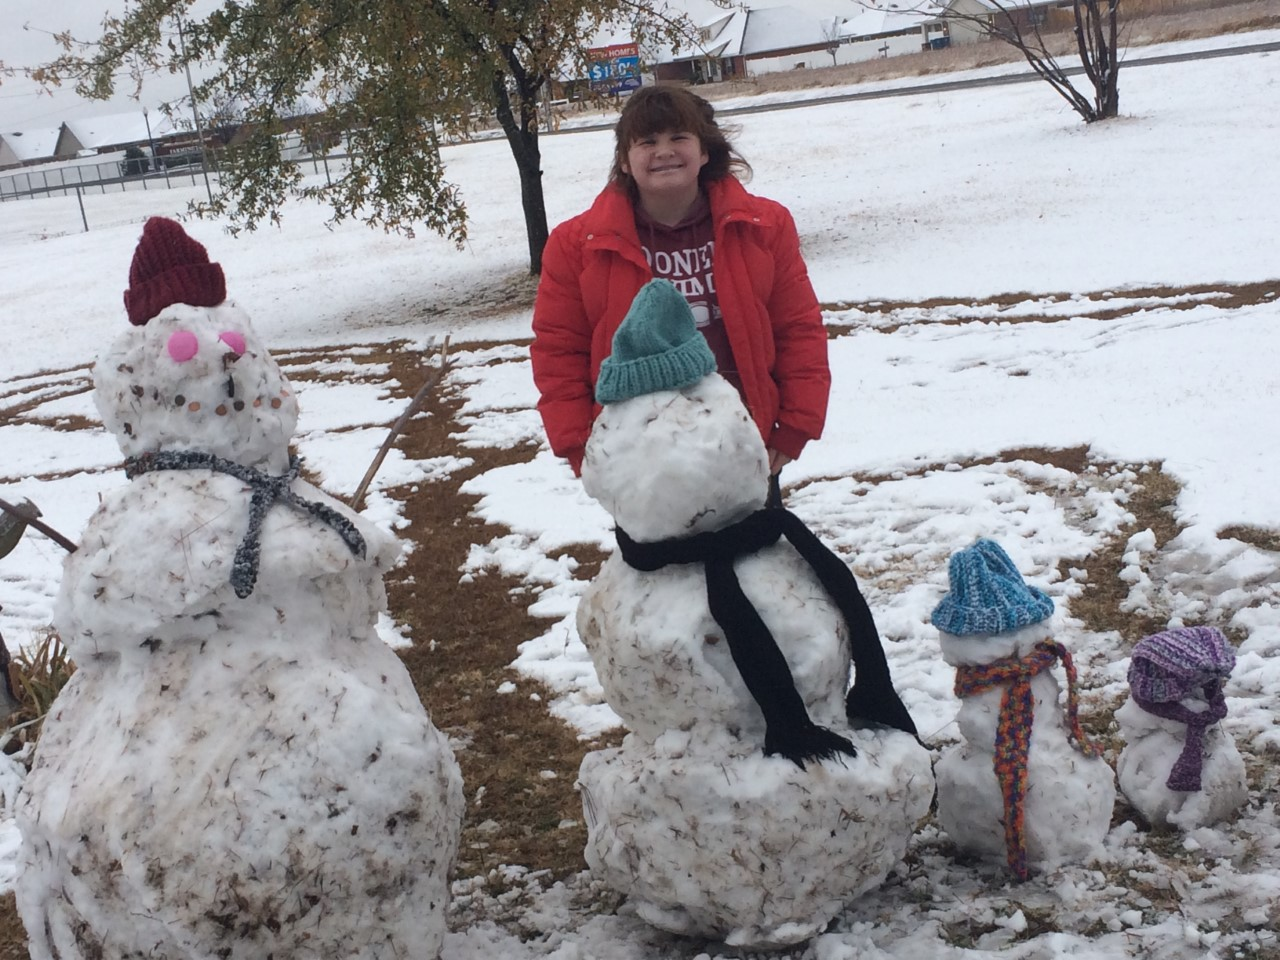 Emma and her snow family